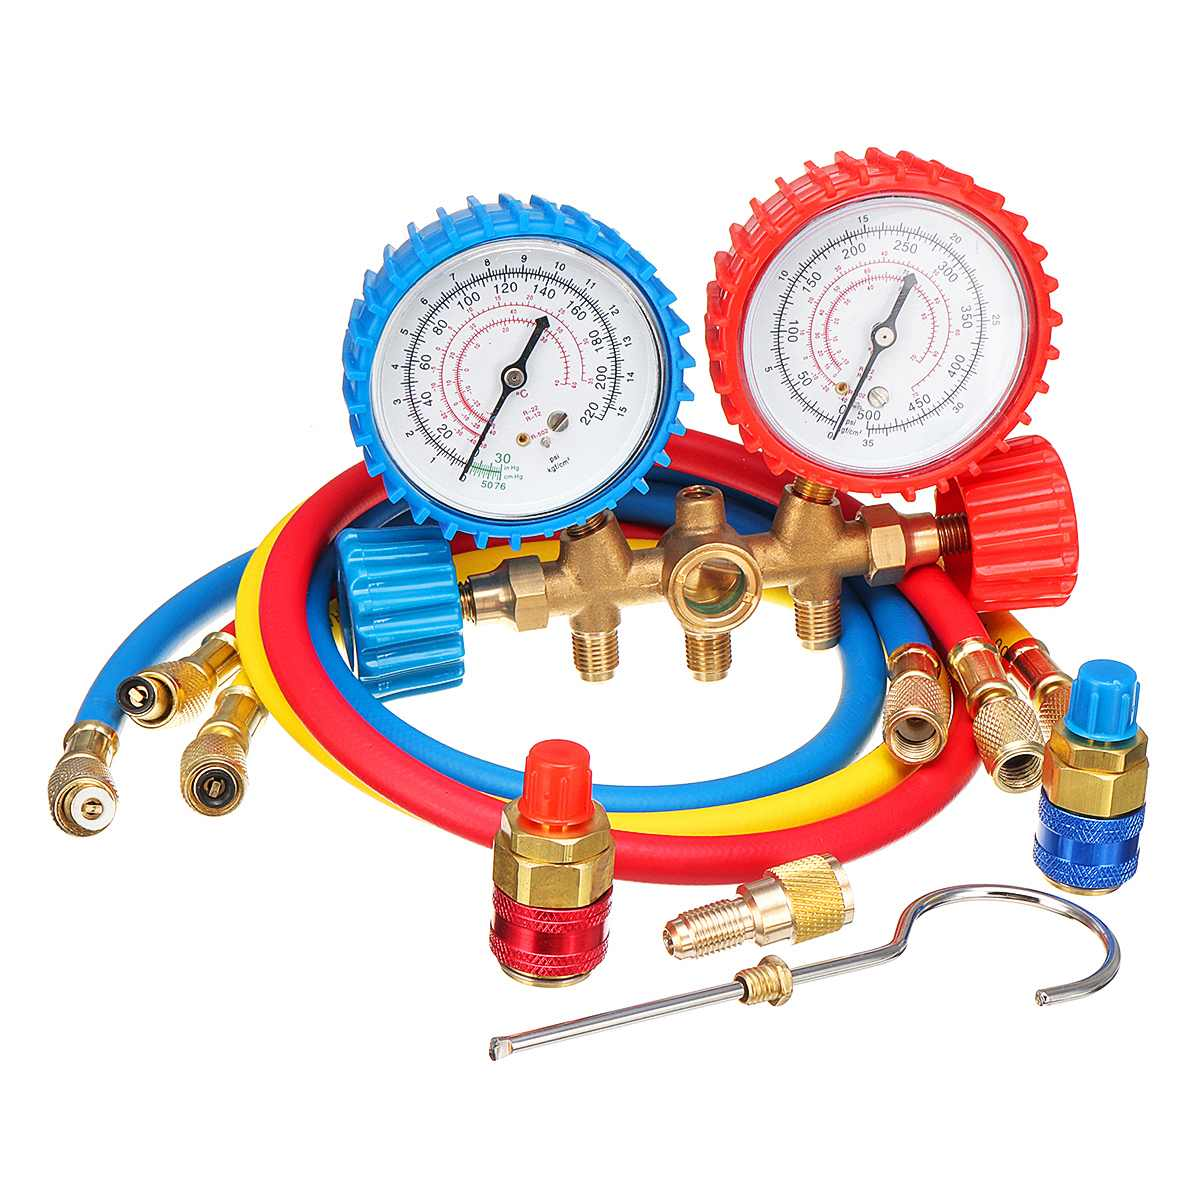 Air Conditioning Manifold Gauge Set Lightweight Test Diagnostic Kit for R134A R12 R22 R502 Refrigerant Portable Repair Tools